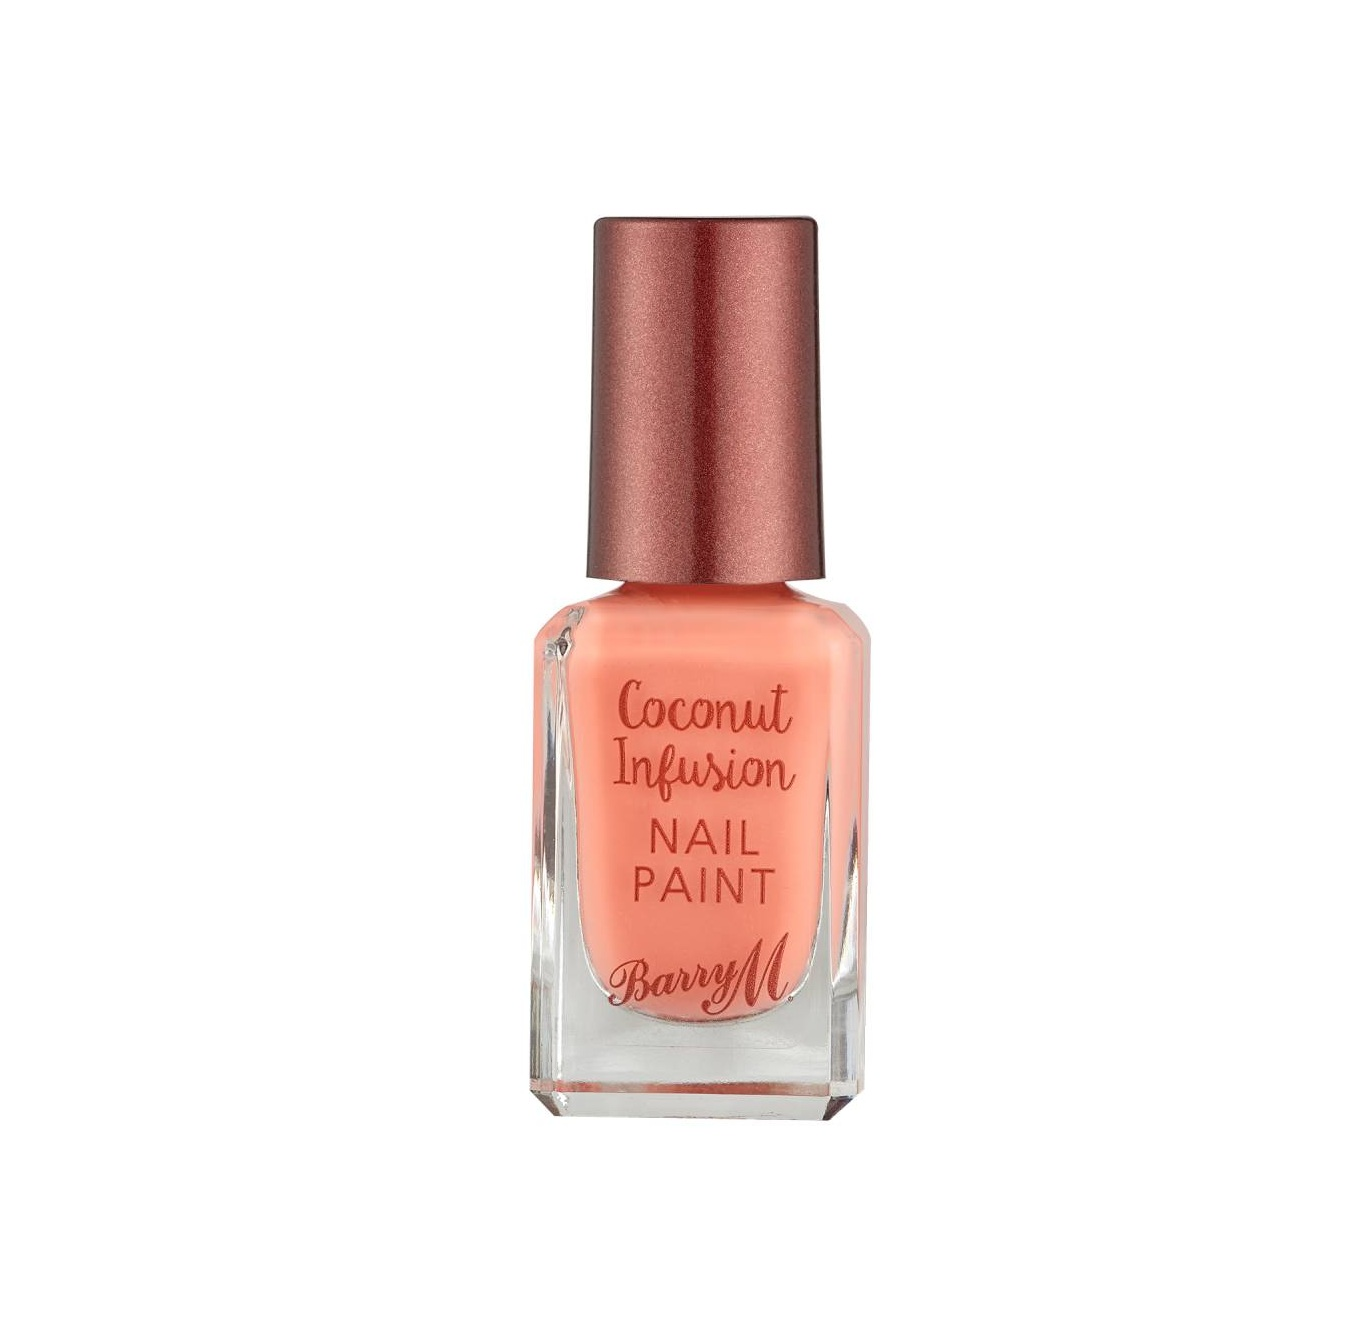 Barry M Coconut Infusion Flamingo £4.99 - Packed with coconut oil and water to nourish and hydrate the nails, Barry M Coconut Infusion comes in lots of pretty shades such as this lovely Flamingo, has a glossy finish and lasts for ages.